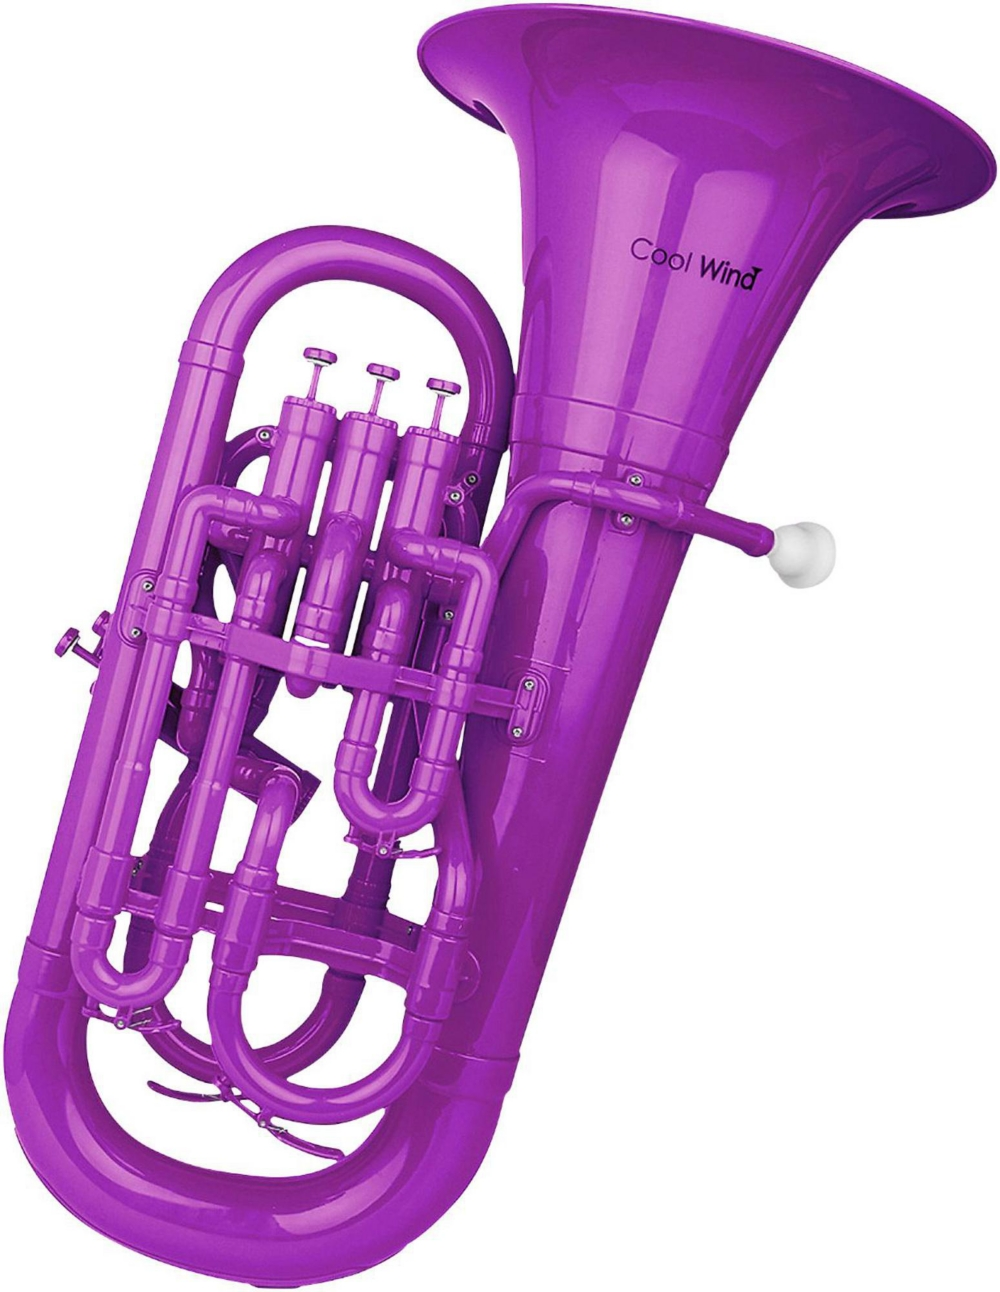 CEU-200 Series 4-Valve Plastic Euphonium by Cool Wind